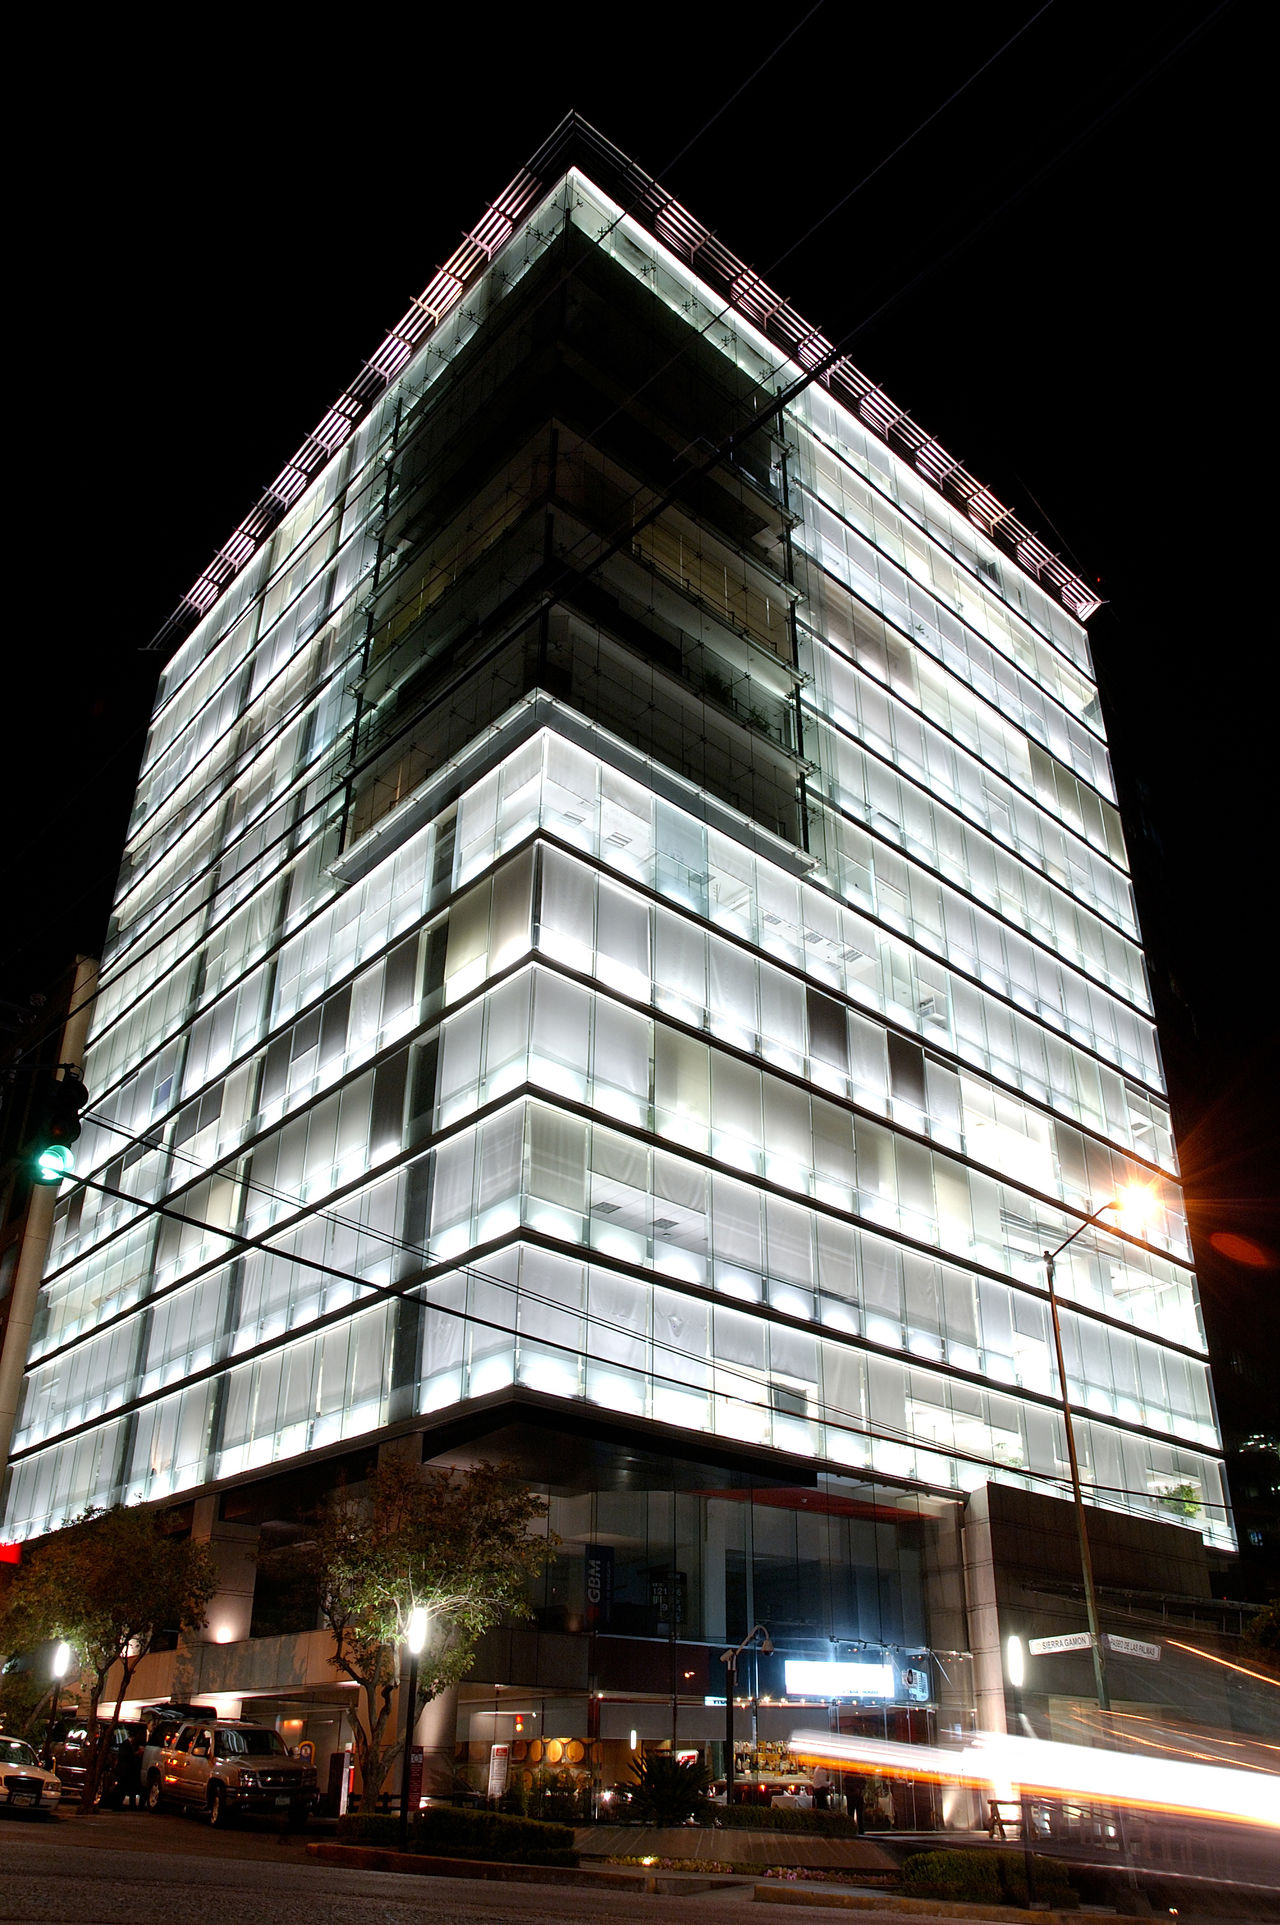 Architecture Building Exterior Built Structure City Illuminated Low Angle View Modern México City, Night Night Photography No People Outdoors Sky